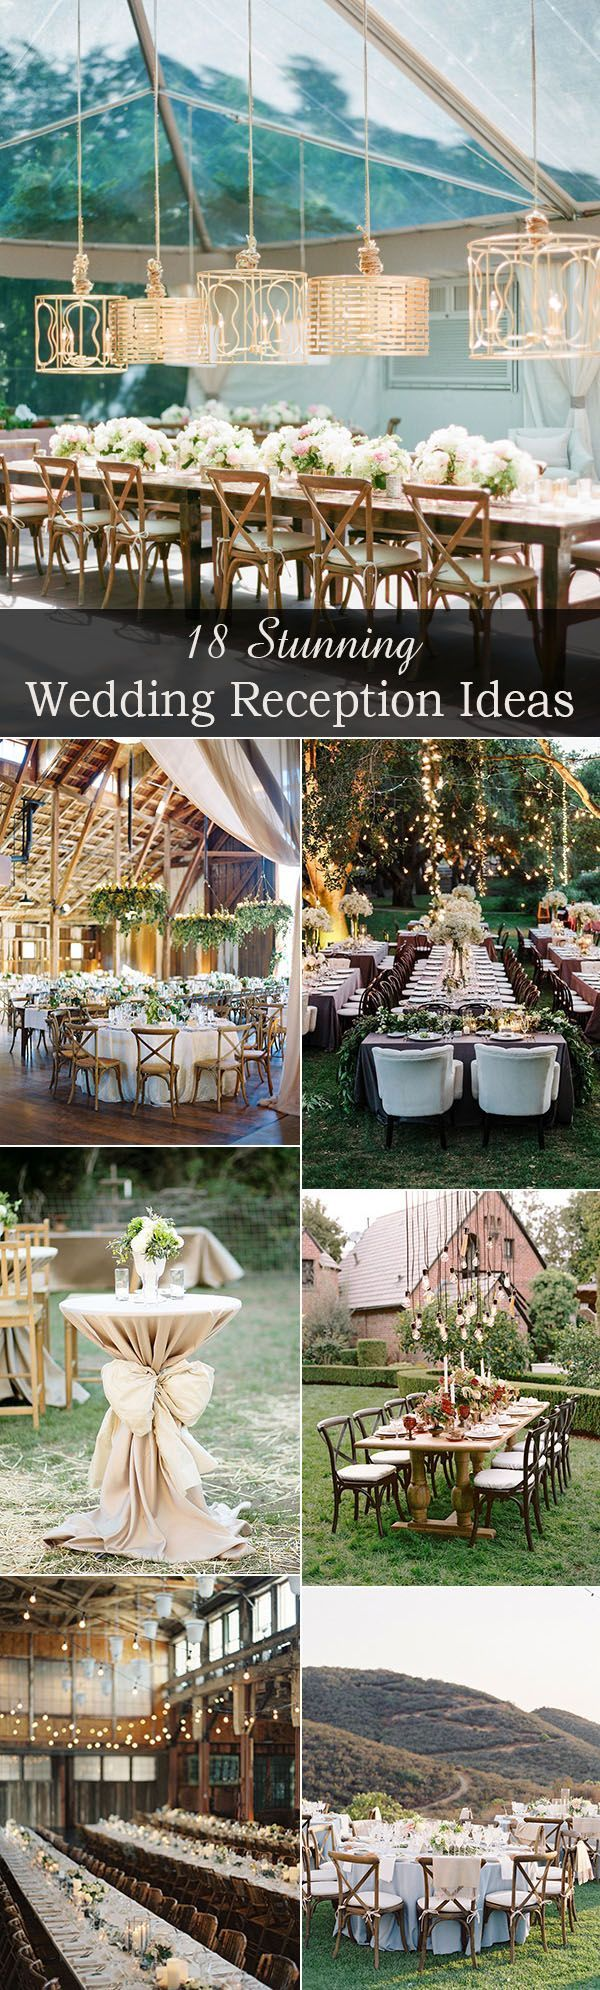 best 25 wedding reception lighting ideas on pinterest wedding